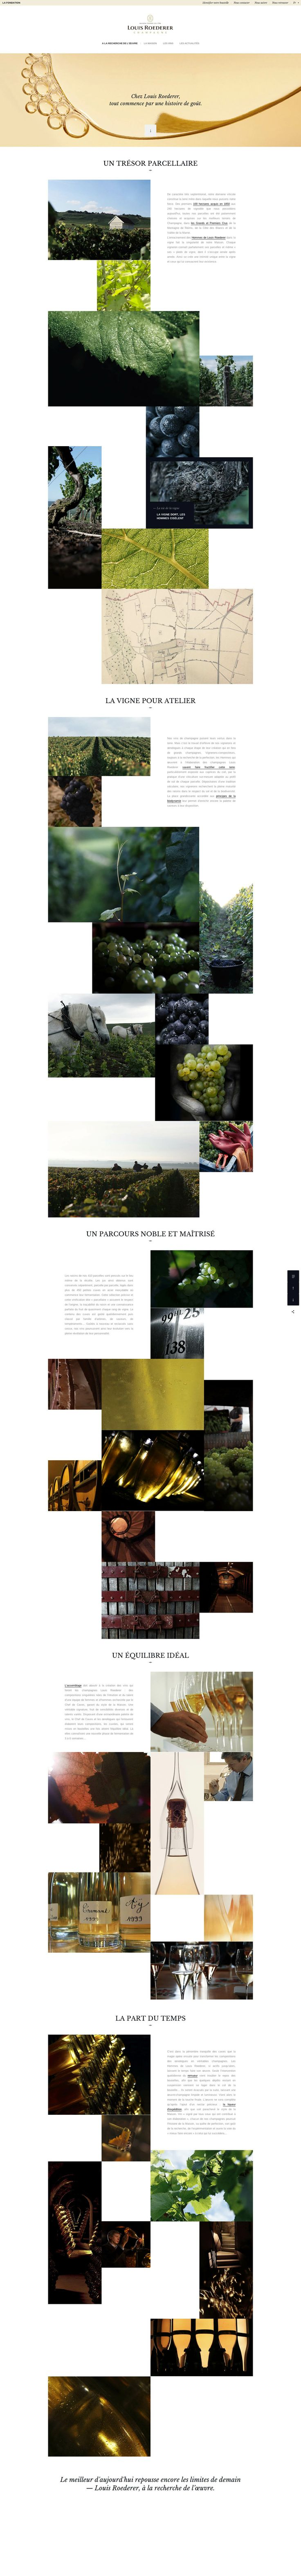 Champagne Louis Roederer  Clean & beautiful web design with nice grid. http://www.louis-roederer.com